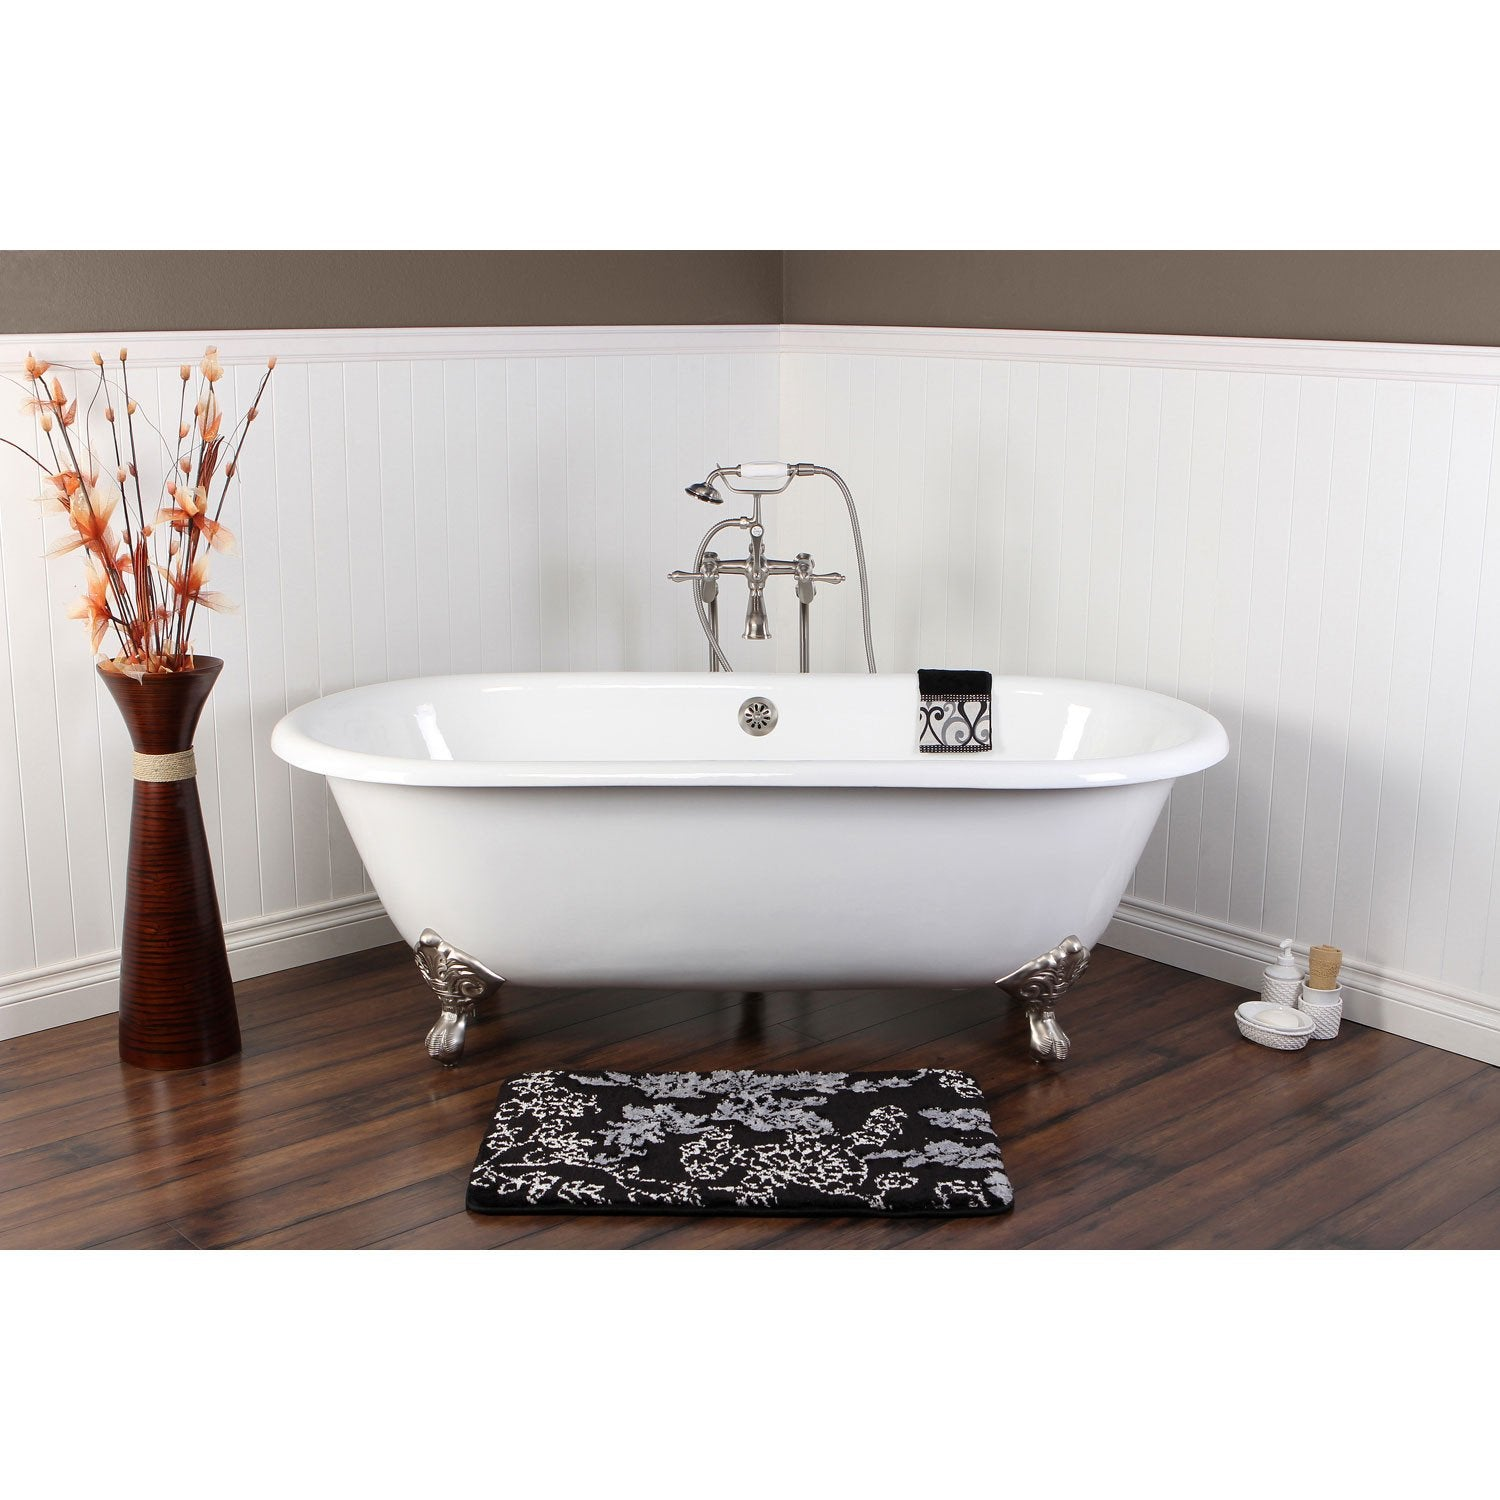 "66"" Clawfoot Tub w Freestanding Satin Nickel Tub Filler & Hardware Package CTP37"